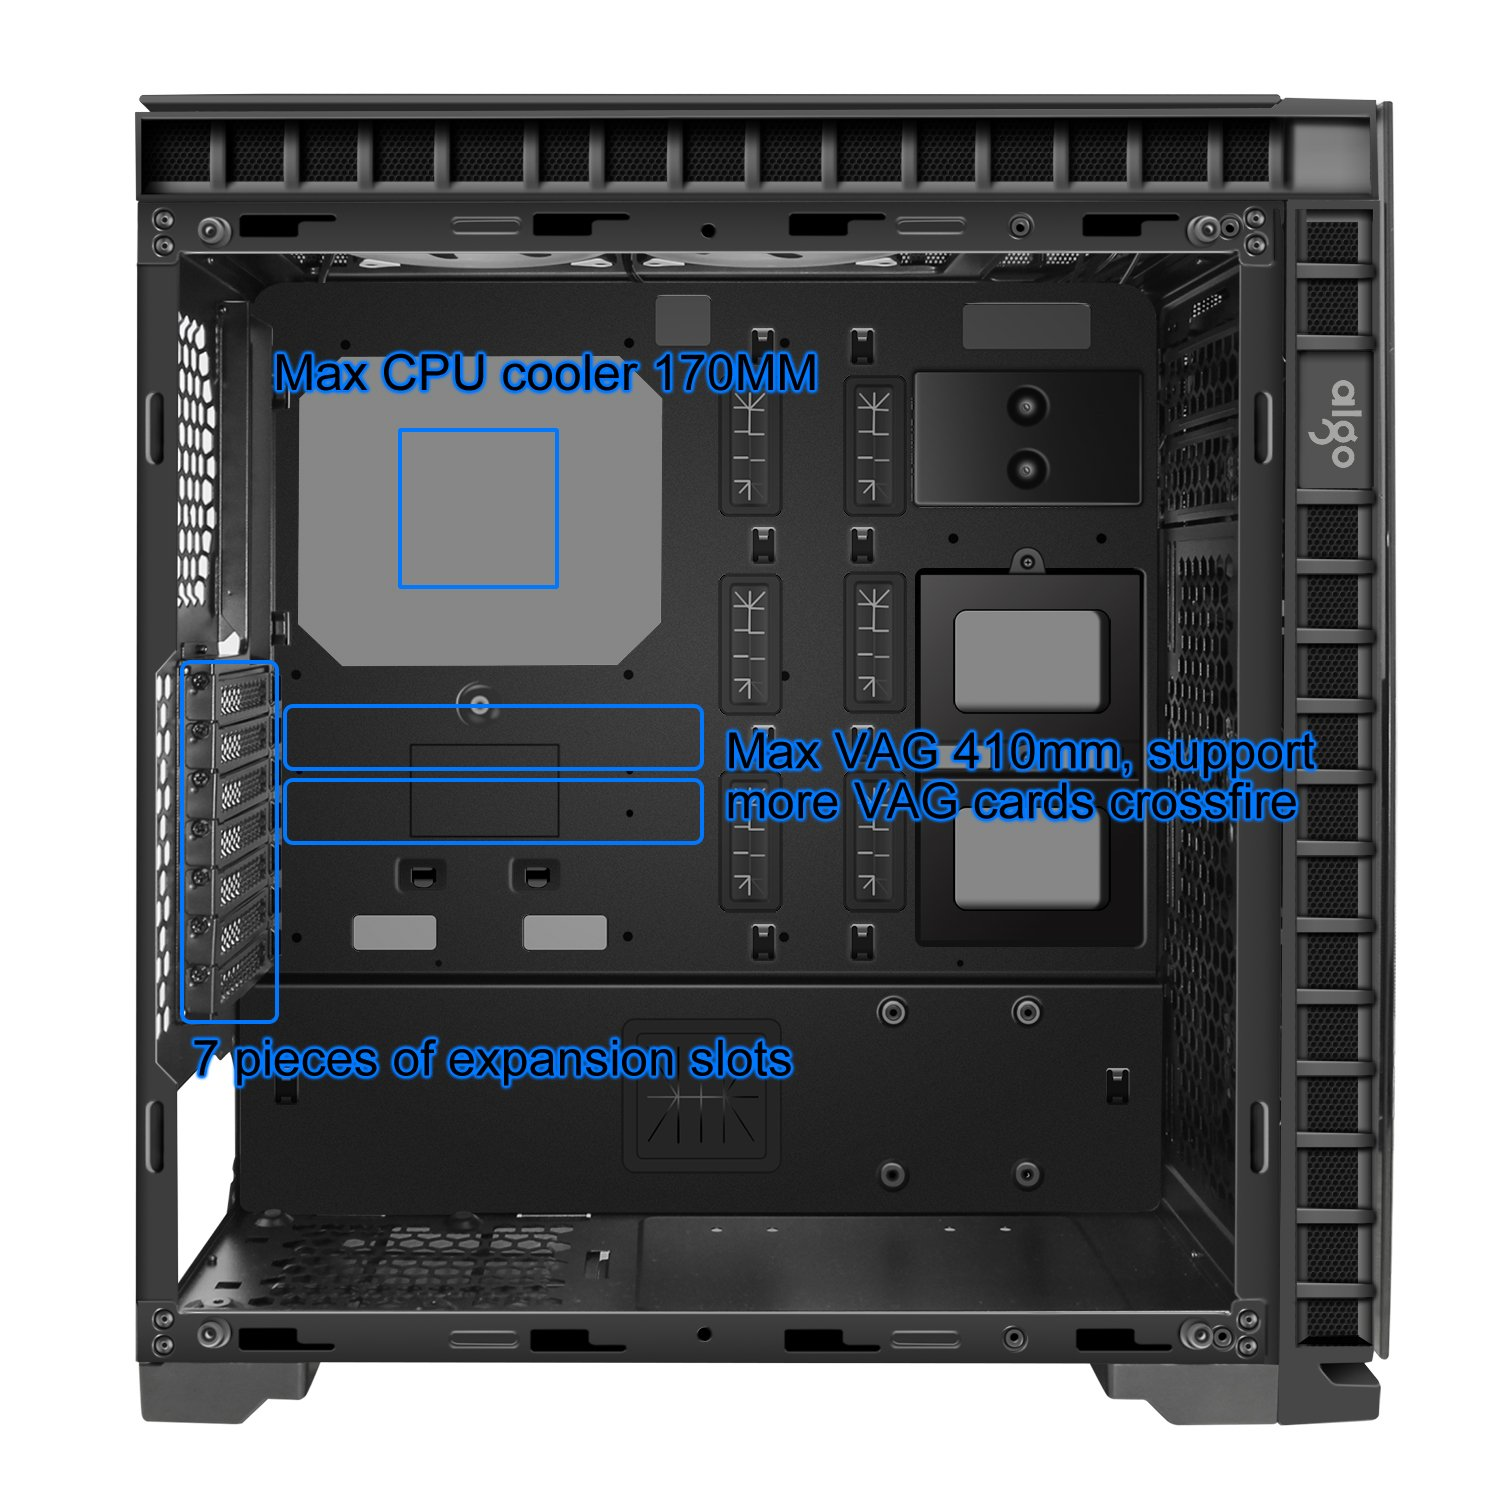 Aigo CRYSTAL ATX Mid Tower Dual Tempered Glass Panels Gaming Computer PC Case USB 3.0 Ports w/ 5 RGB Color Changing LED Ring Lights Fans and Controller Pre-Installed by Aigo (Image #4)